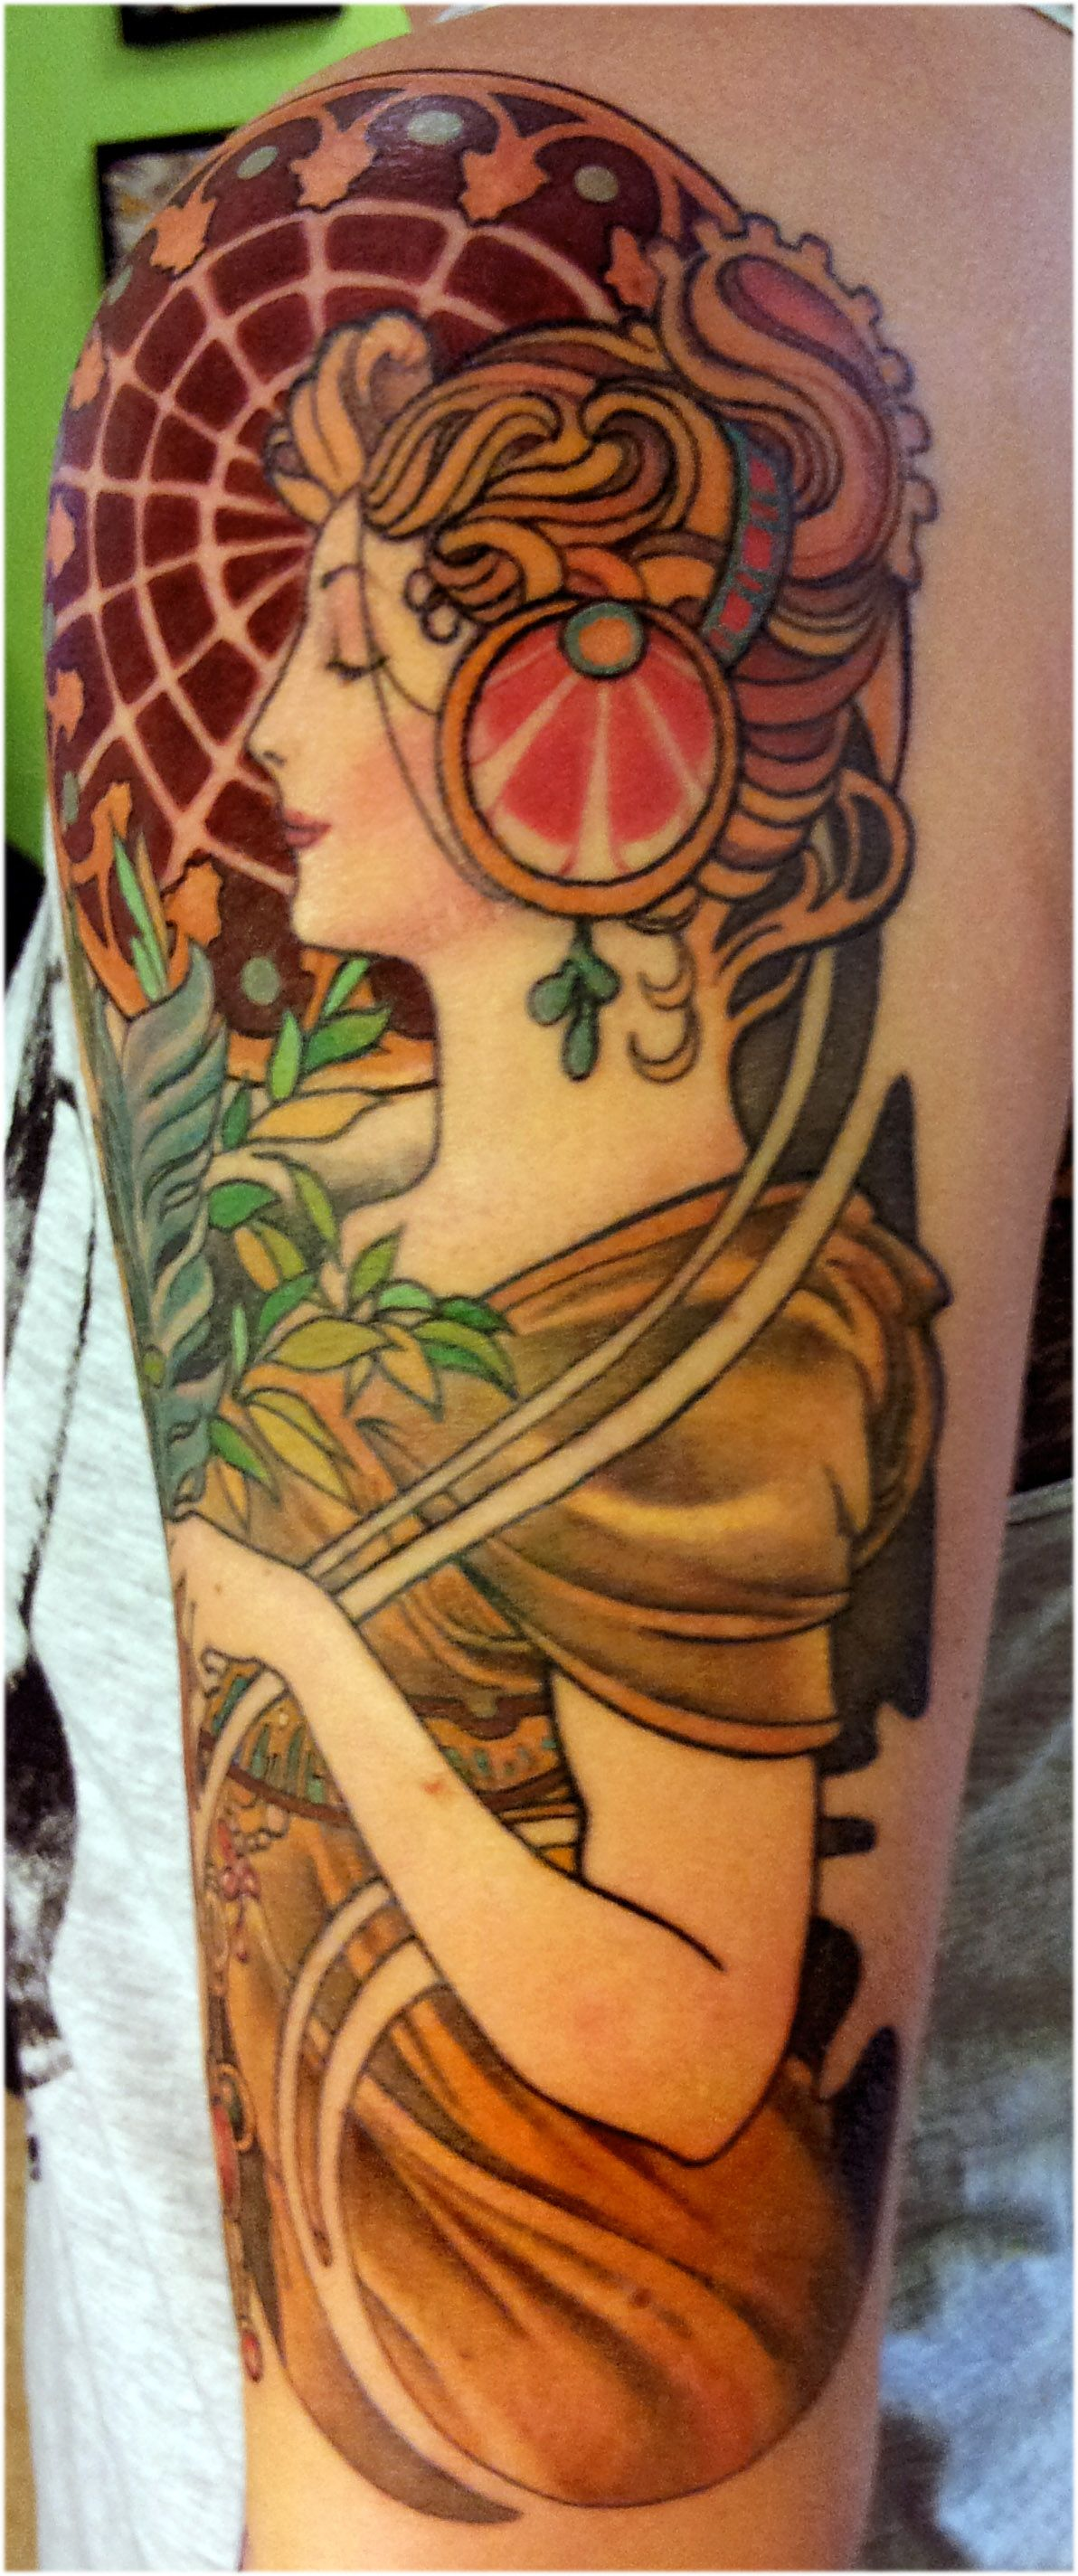 Alphonse mucha tattoo the coloring is exquisite sharp